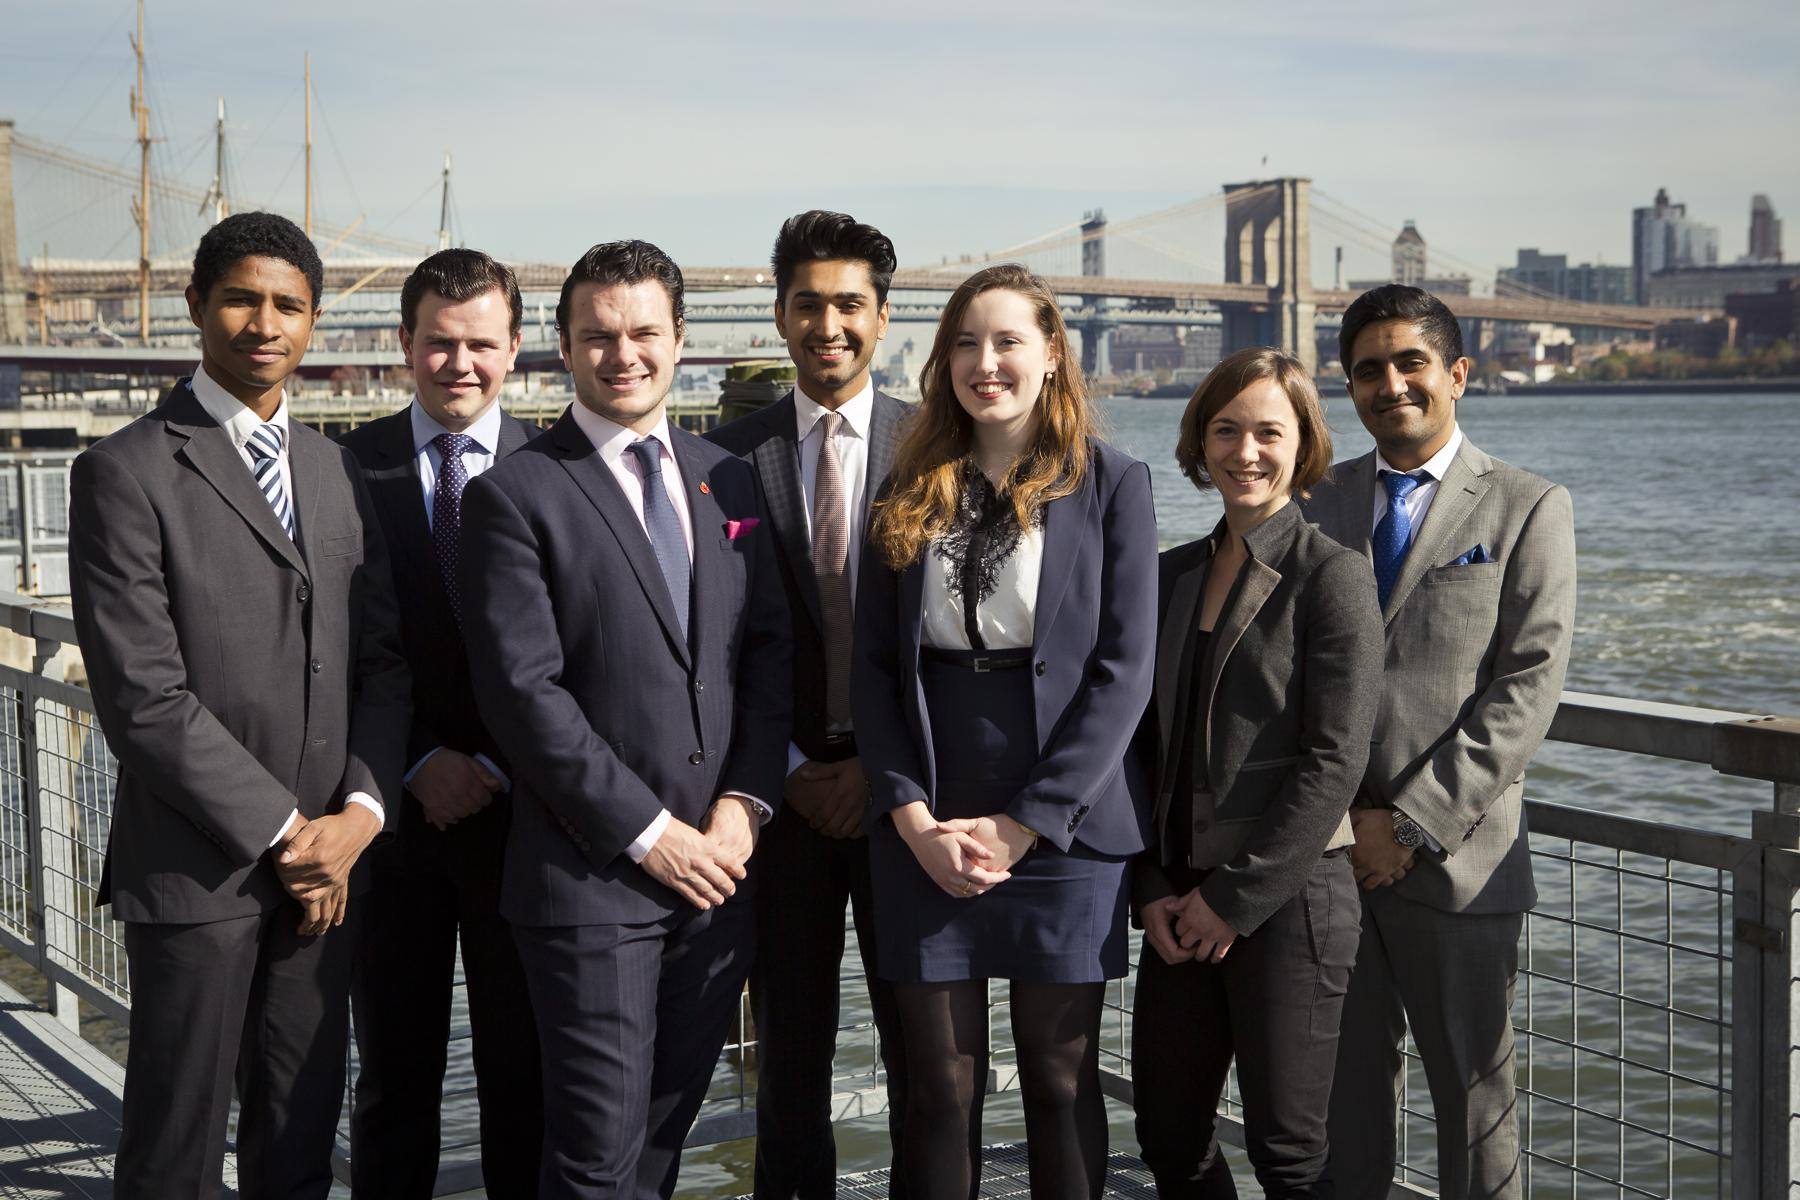 Land Economists head to New York for international Real Estate challenge